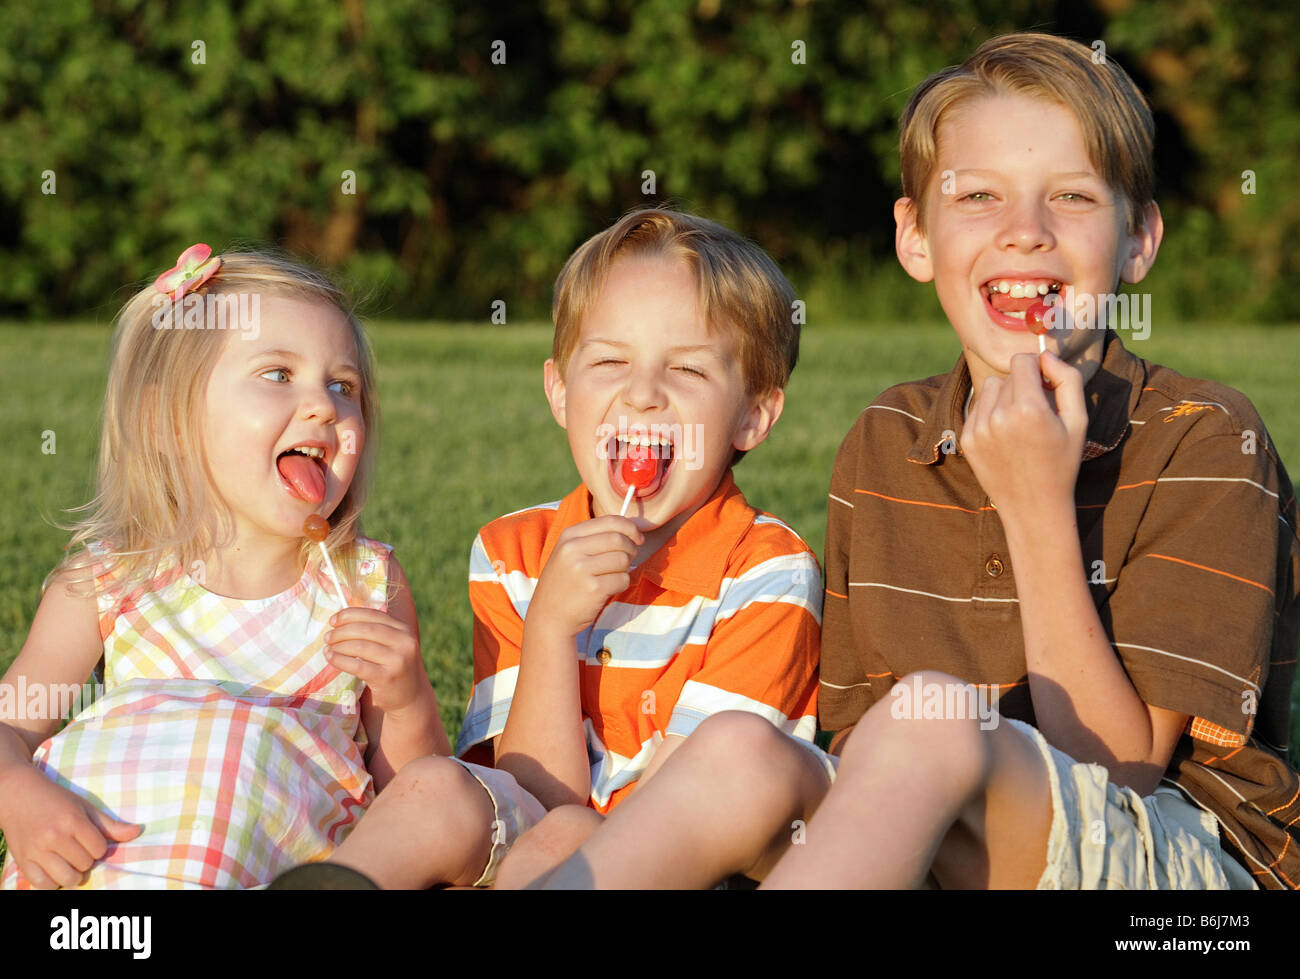 three children laughing and eating suckers outdoors - Stock Image